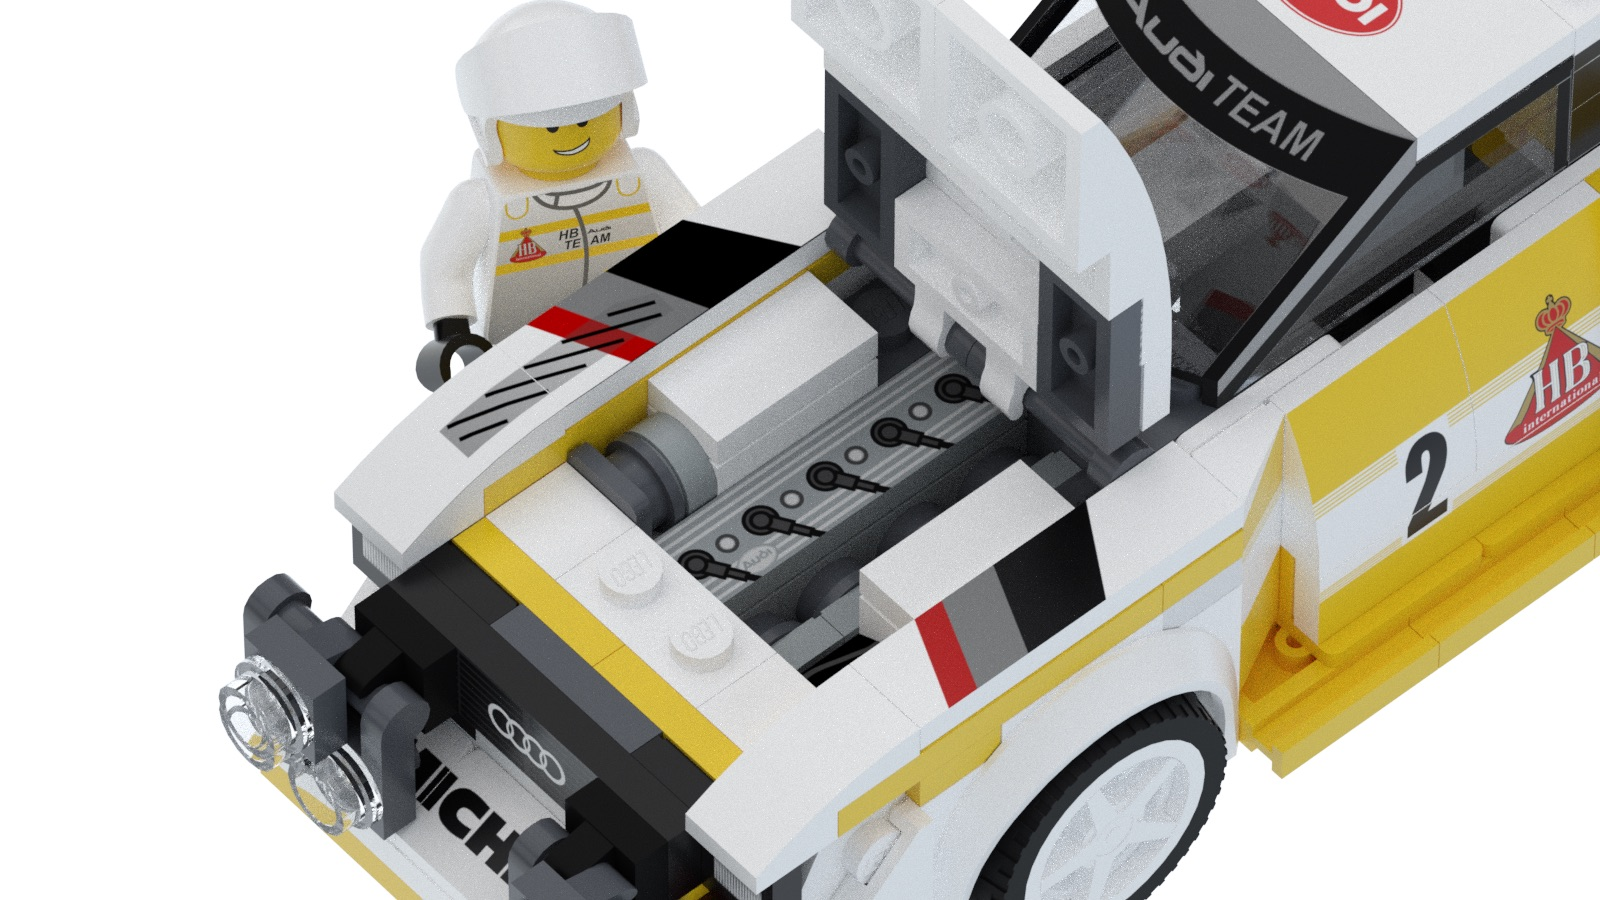 Audi Quattro S1 E2 Group B by Lego (11)